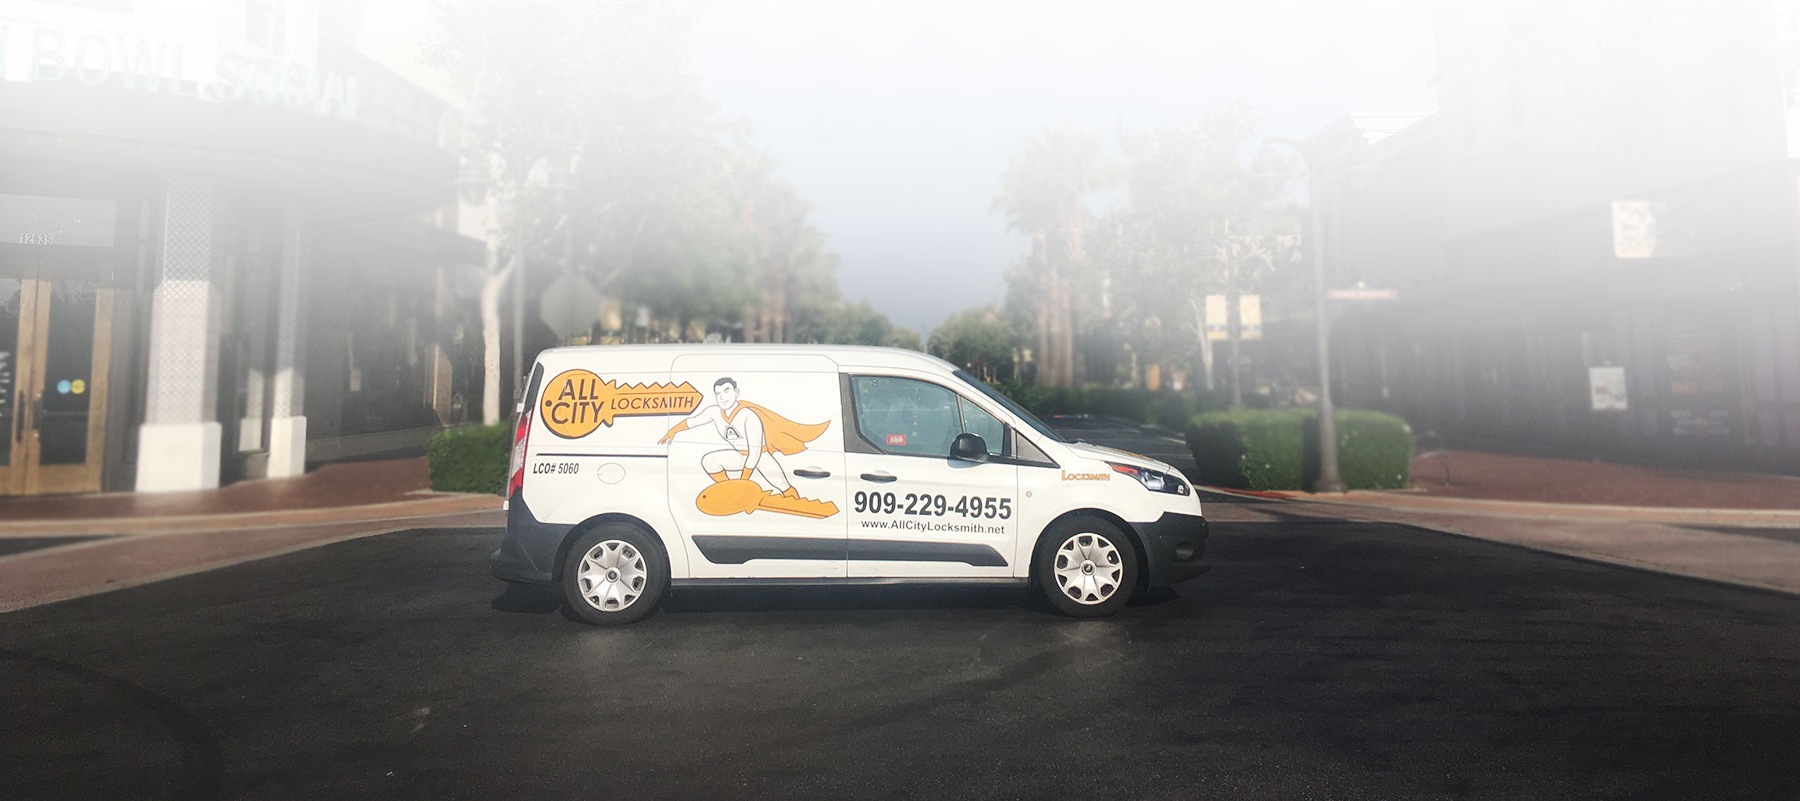 Locksmith in Rancho Cucamonga